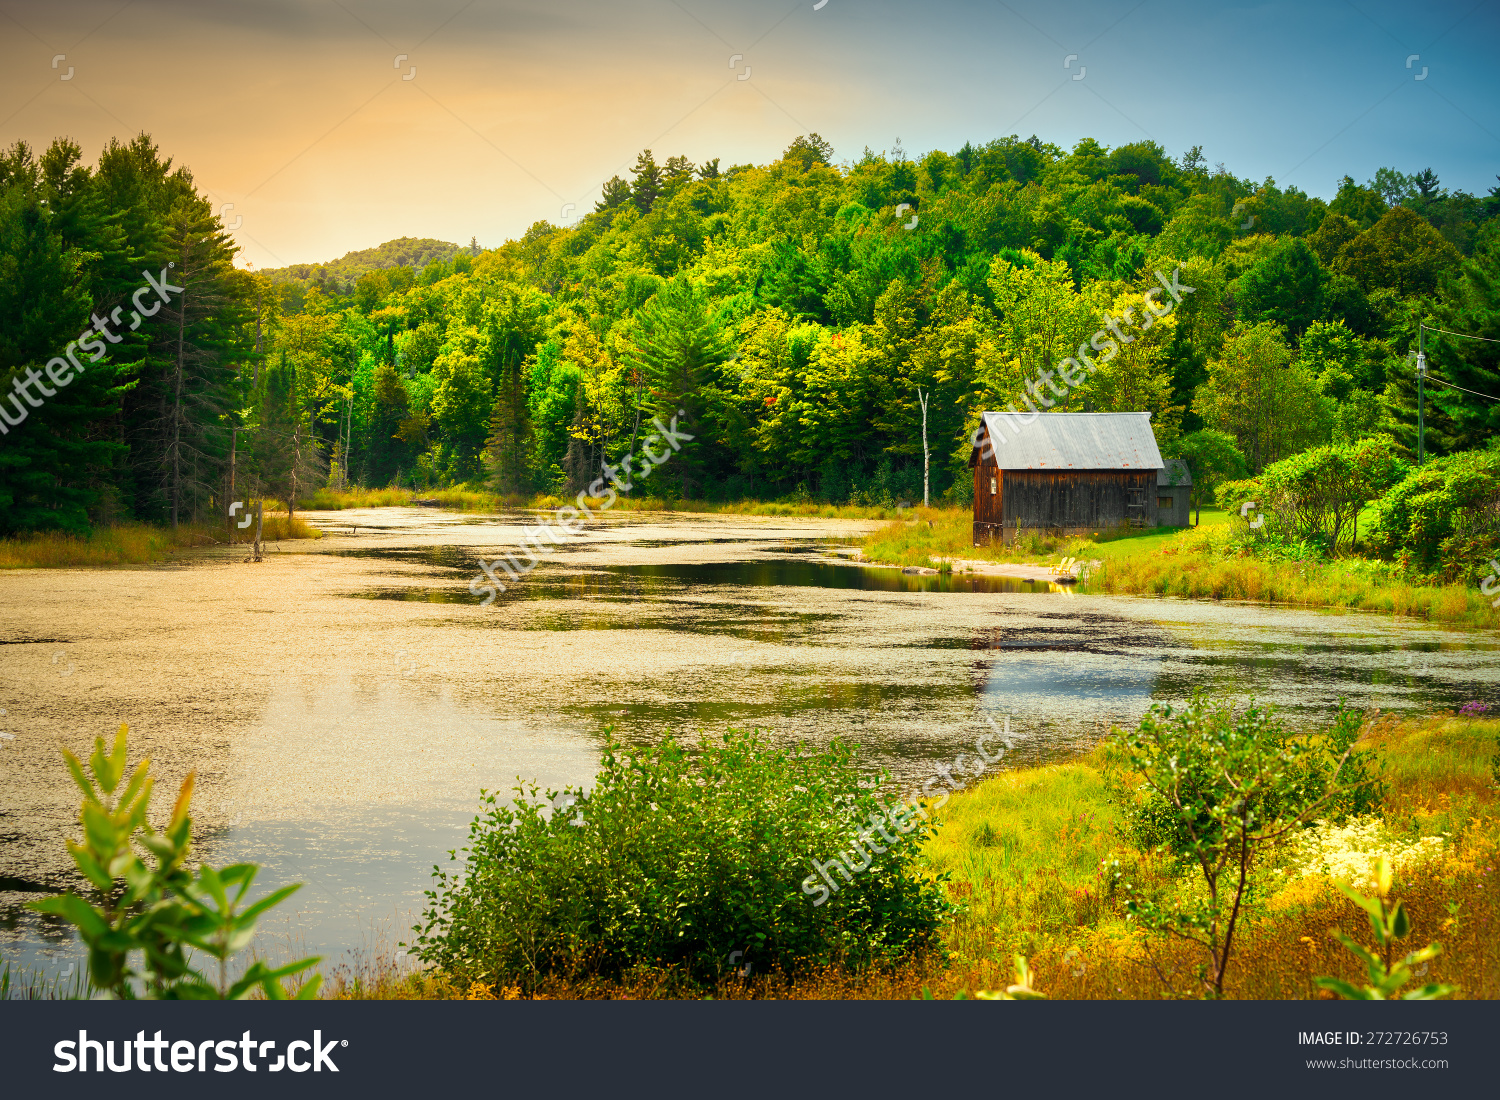 A Small, Wooden Cabin Near The Edge Of A Small Small River Or Pond.